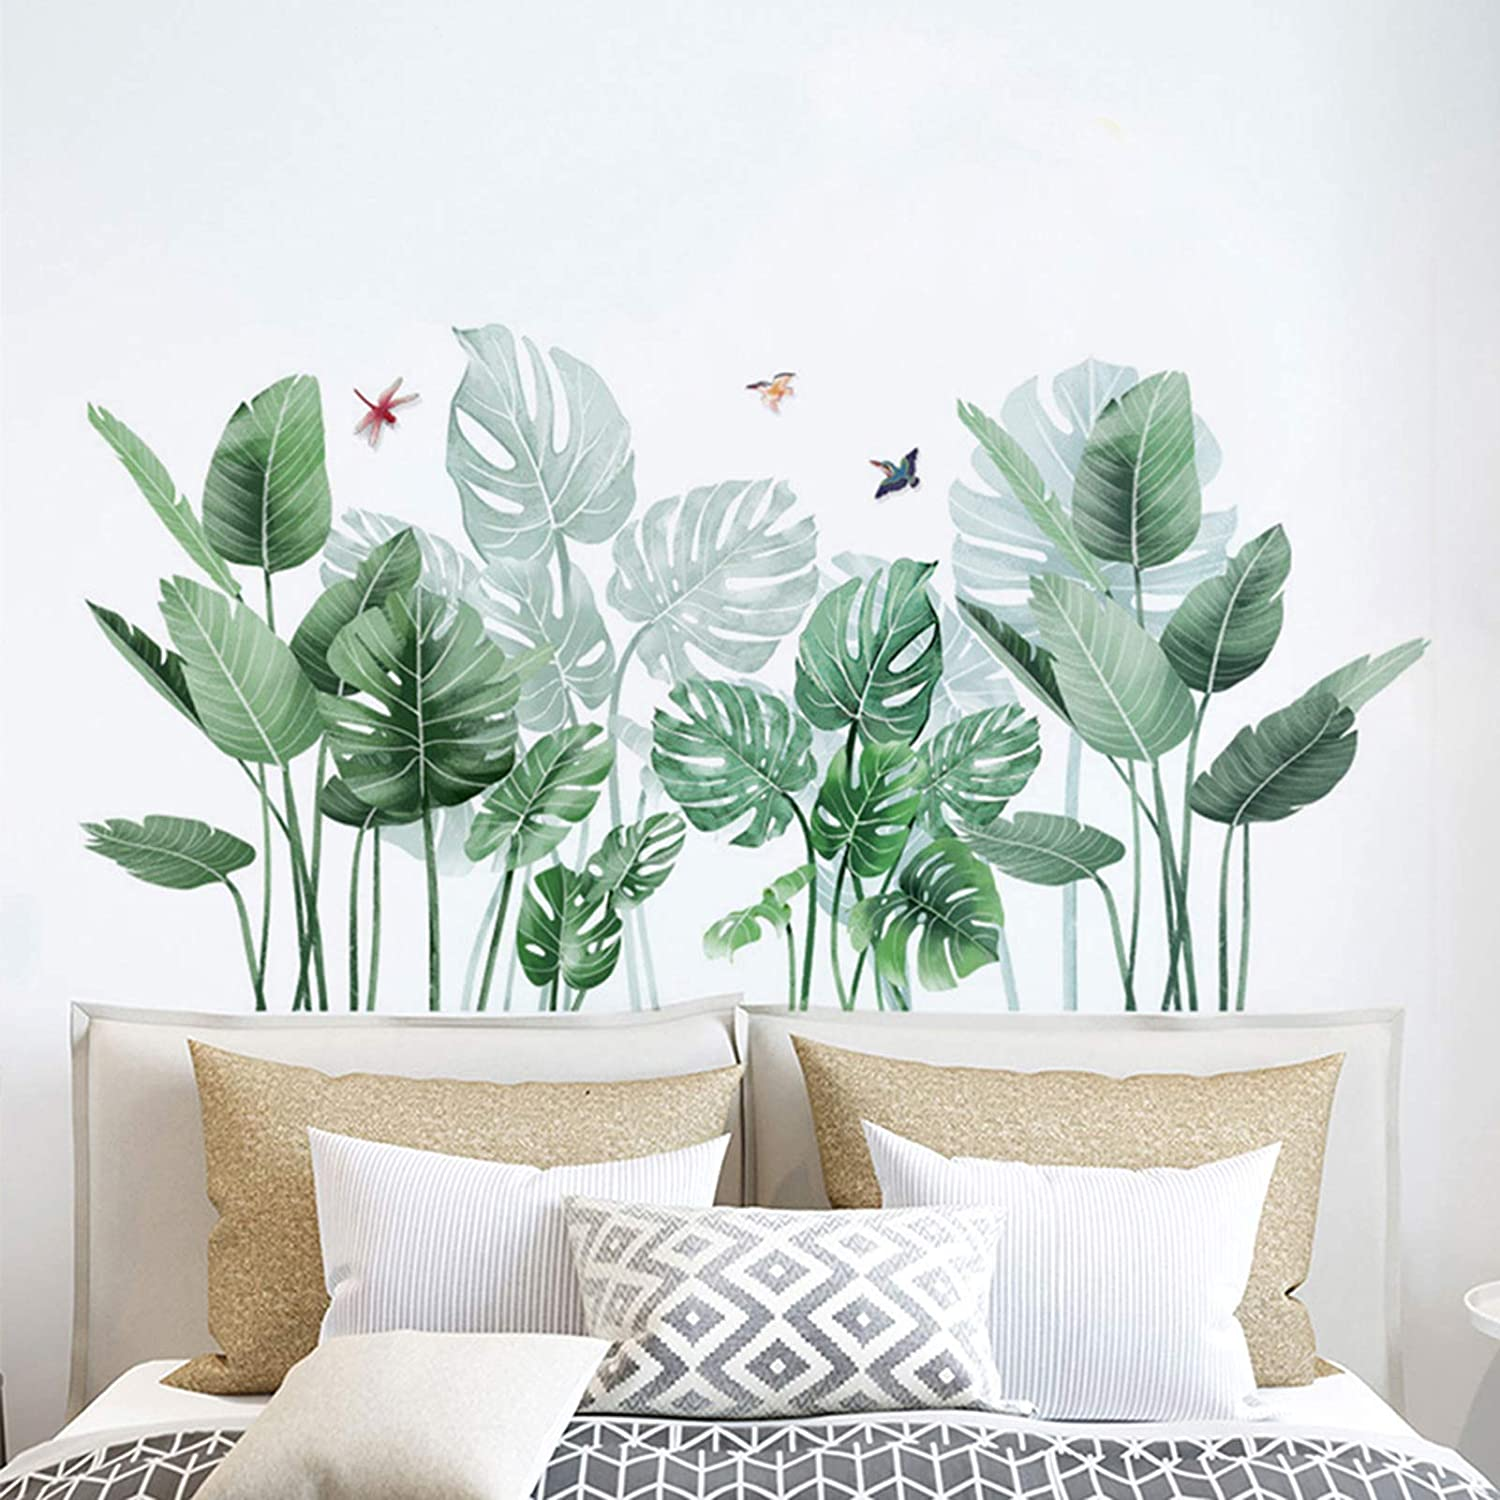 Eutecado Tropical Plants Wall Stickers, Fresh Leaves Wall Decals Monstera Palms Tree Leaf Wall Posters, Creative Vinyl Wall Murals for Nursery Bedroom Office